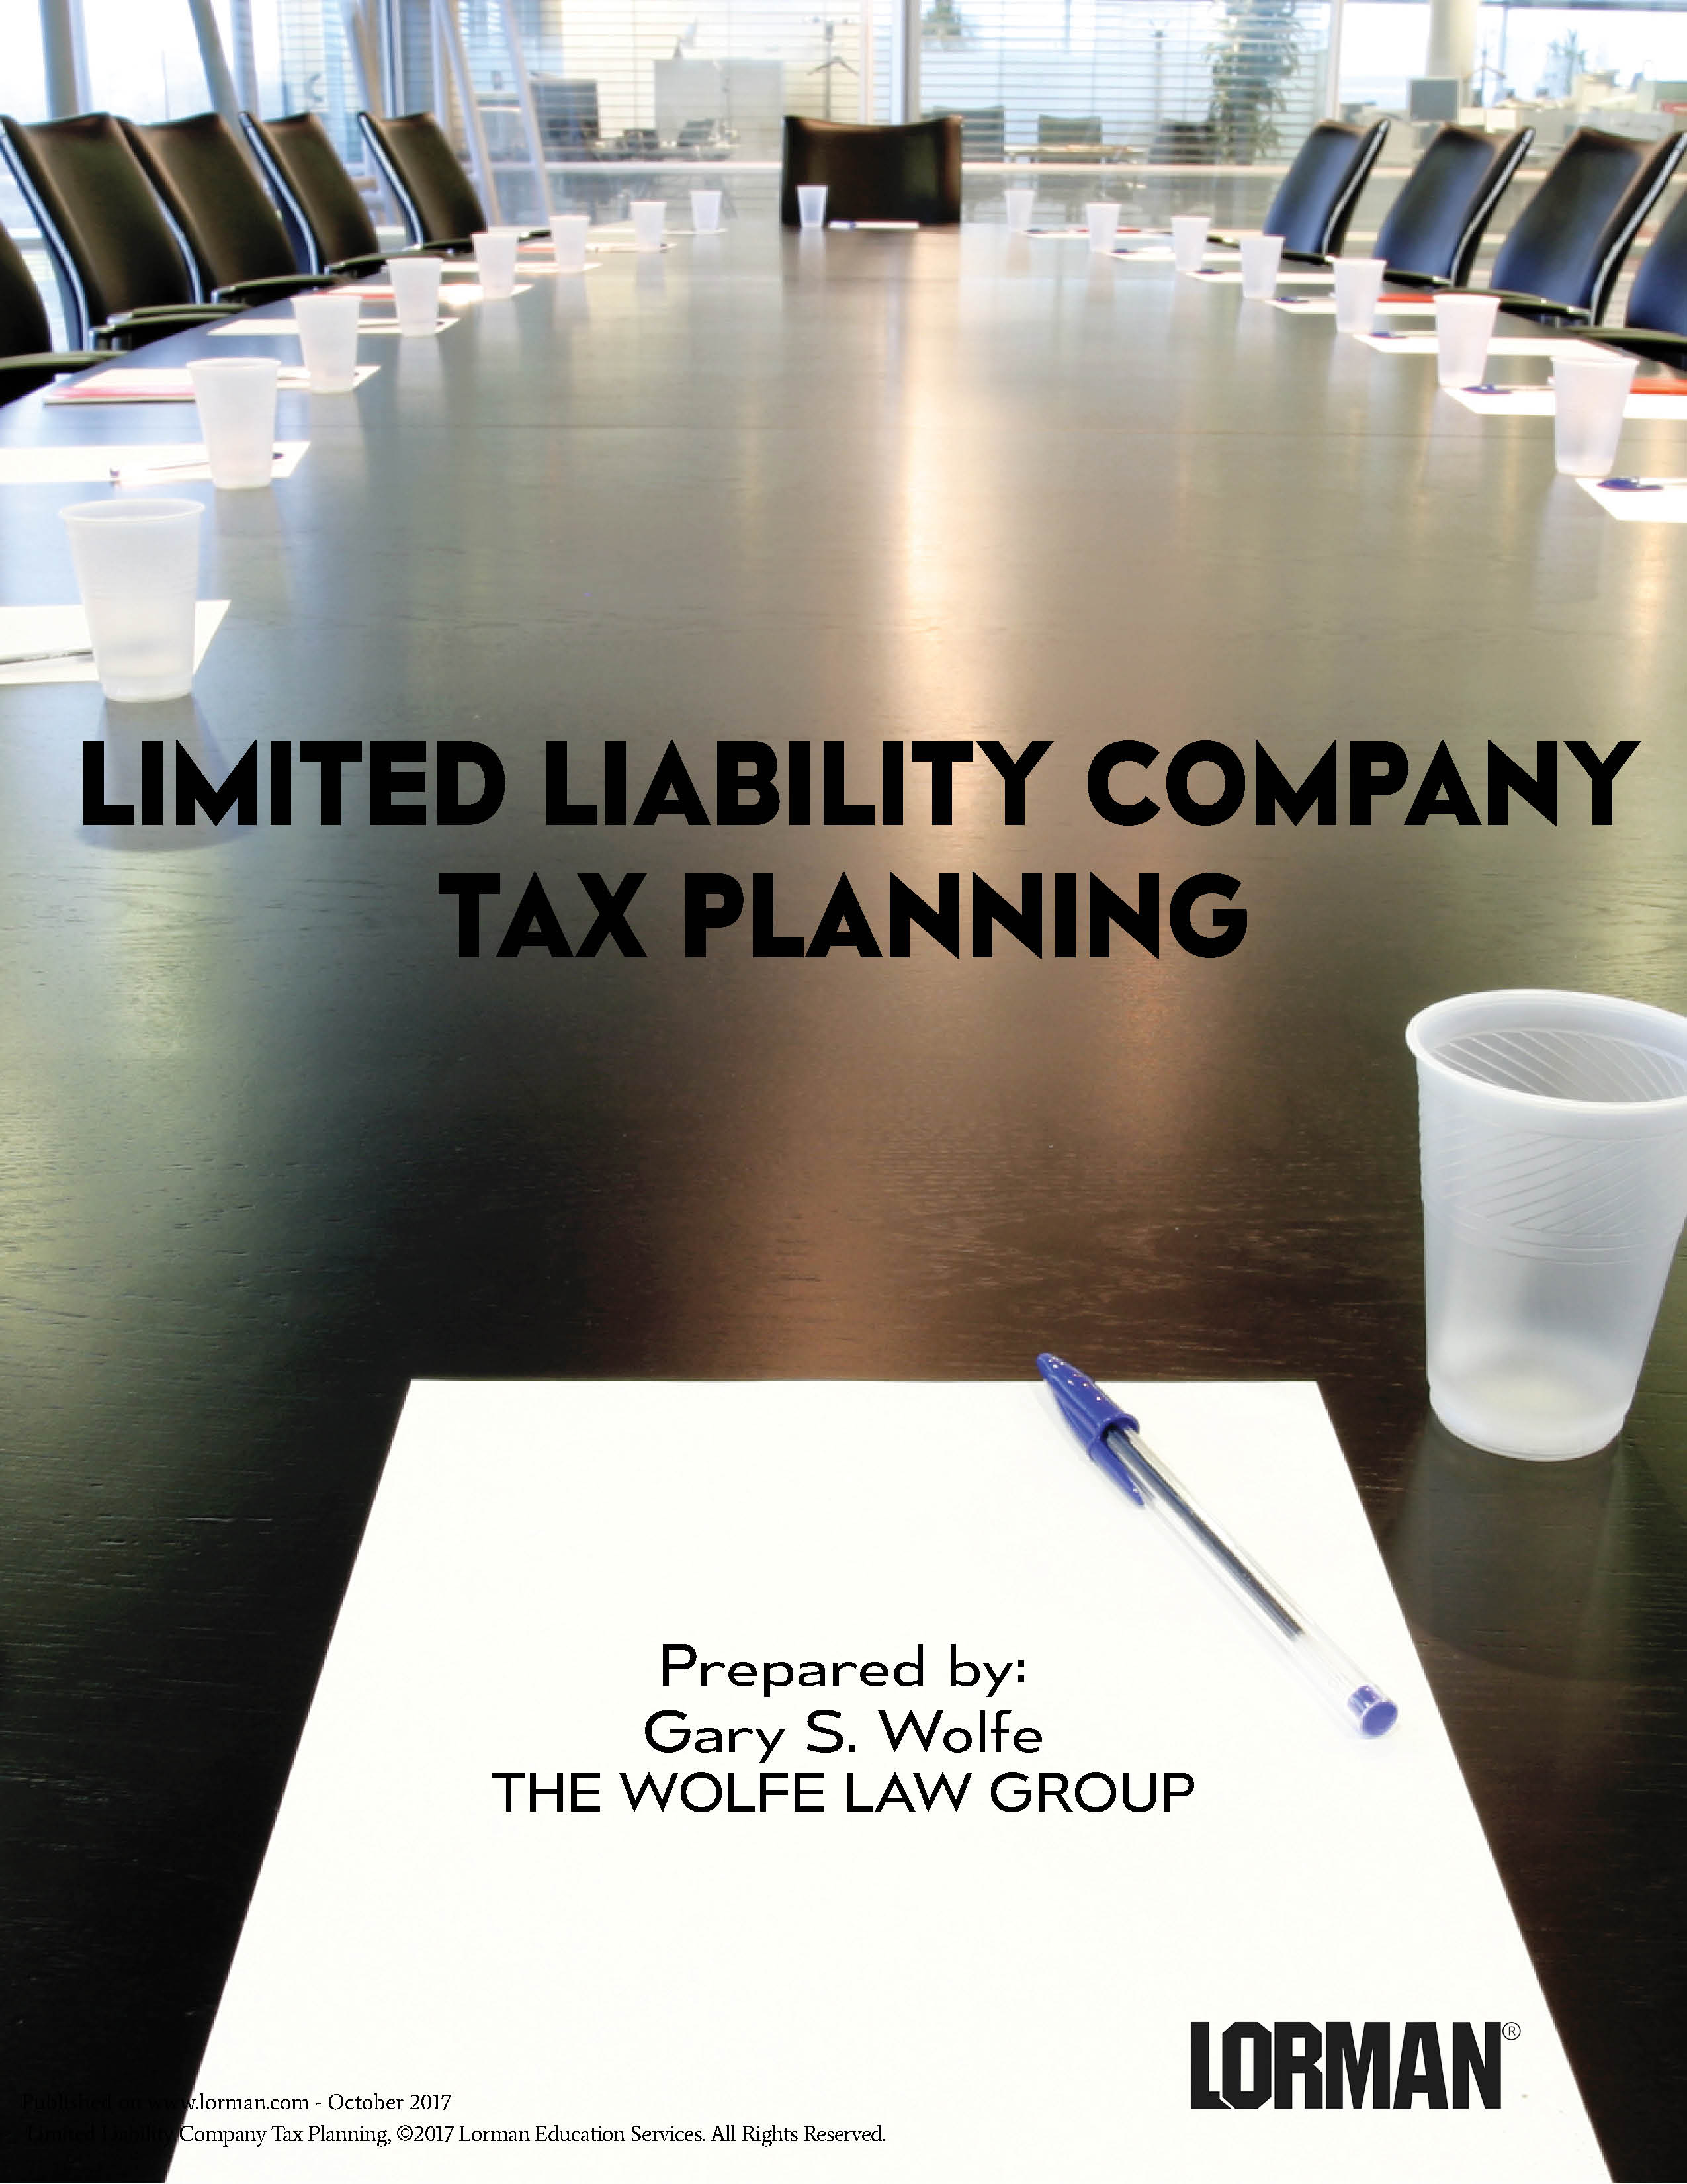 Limited Liability Company Tax Planning